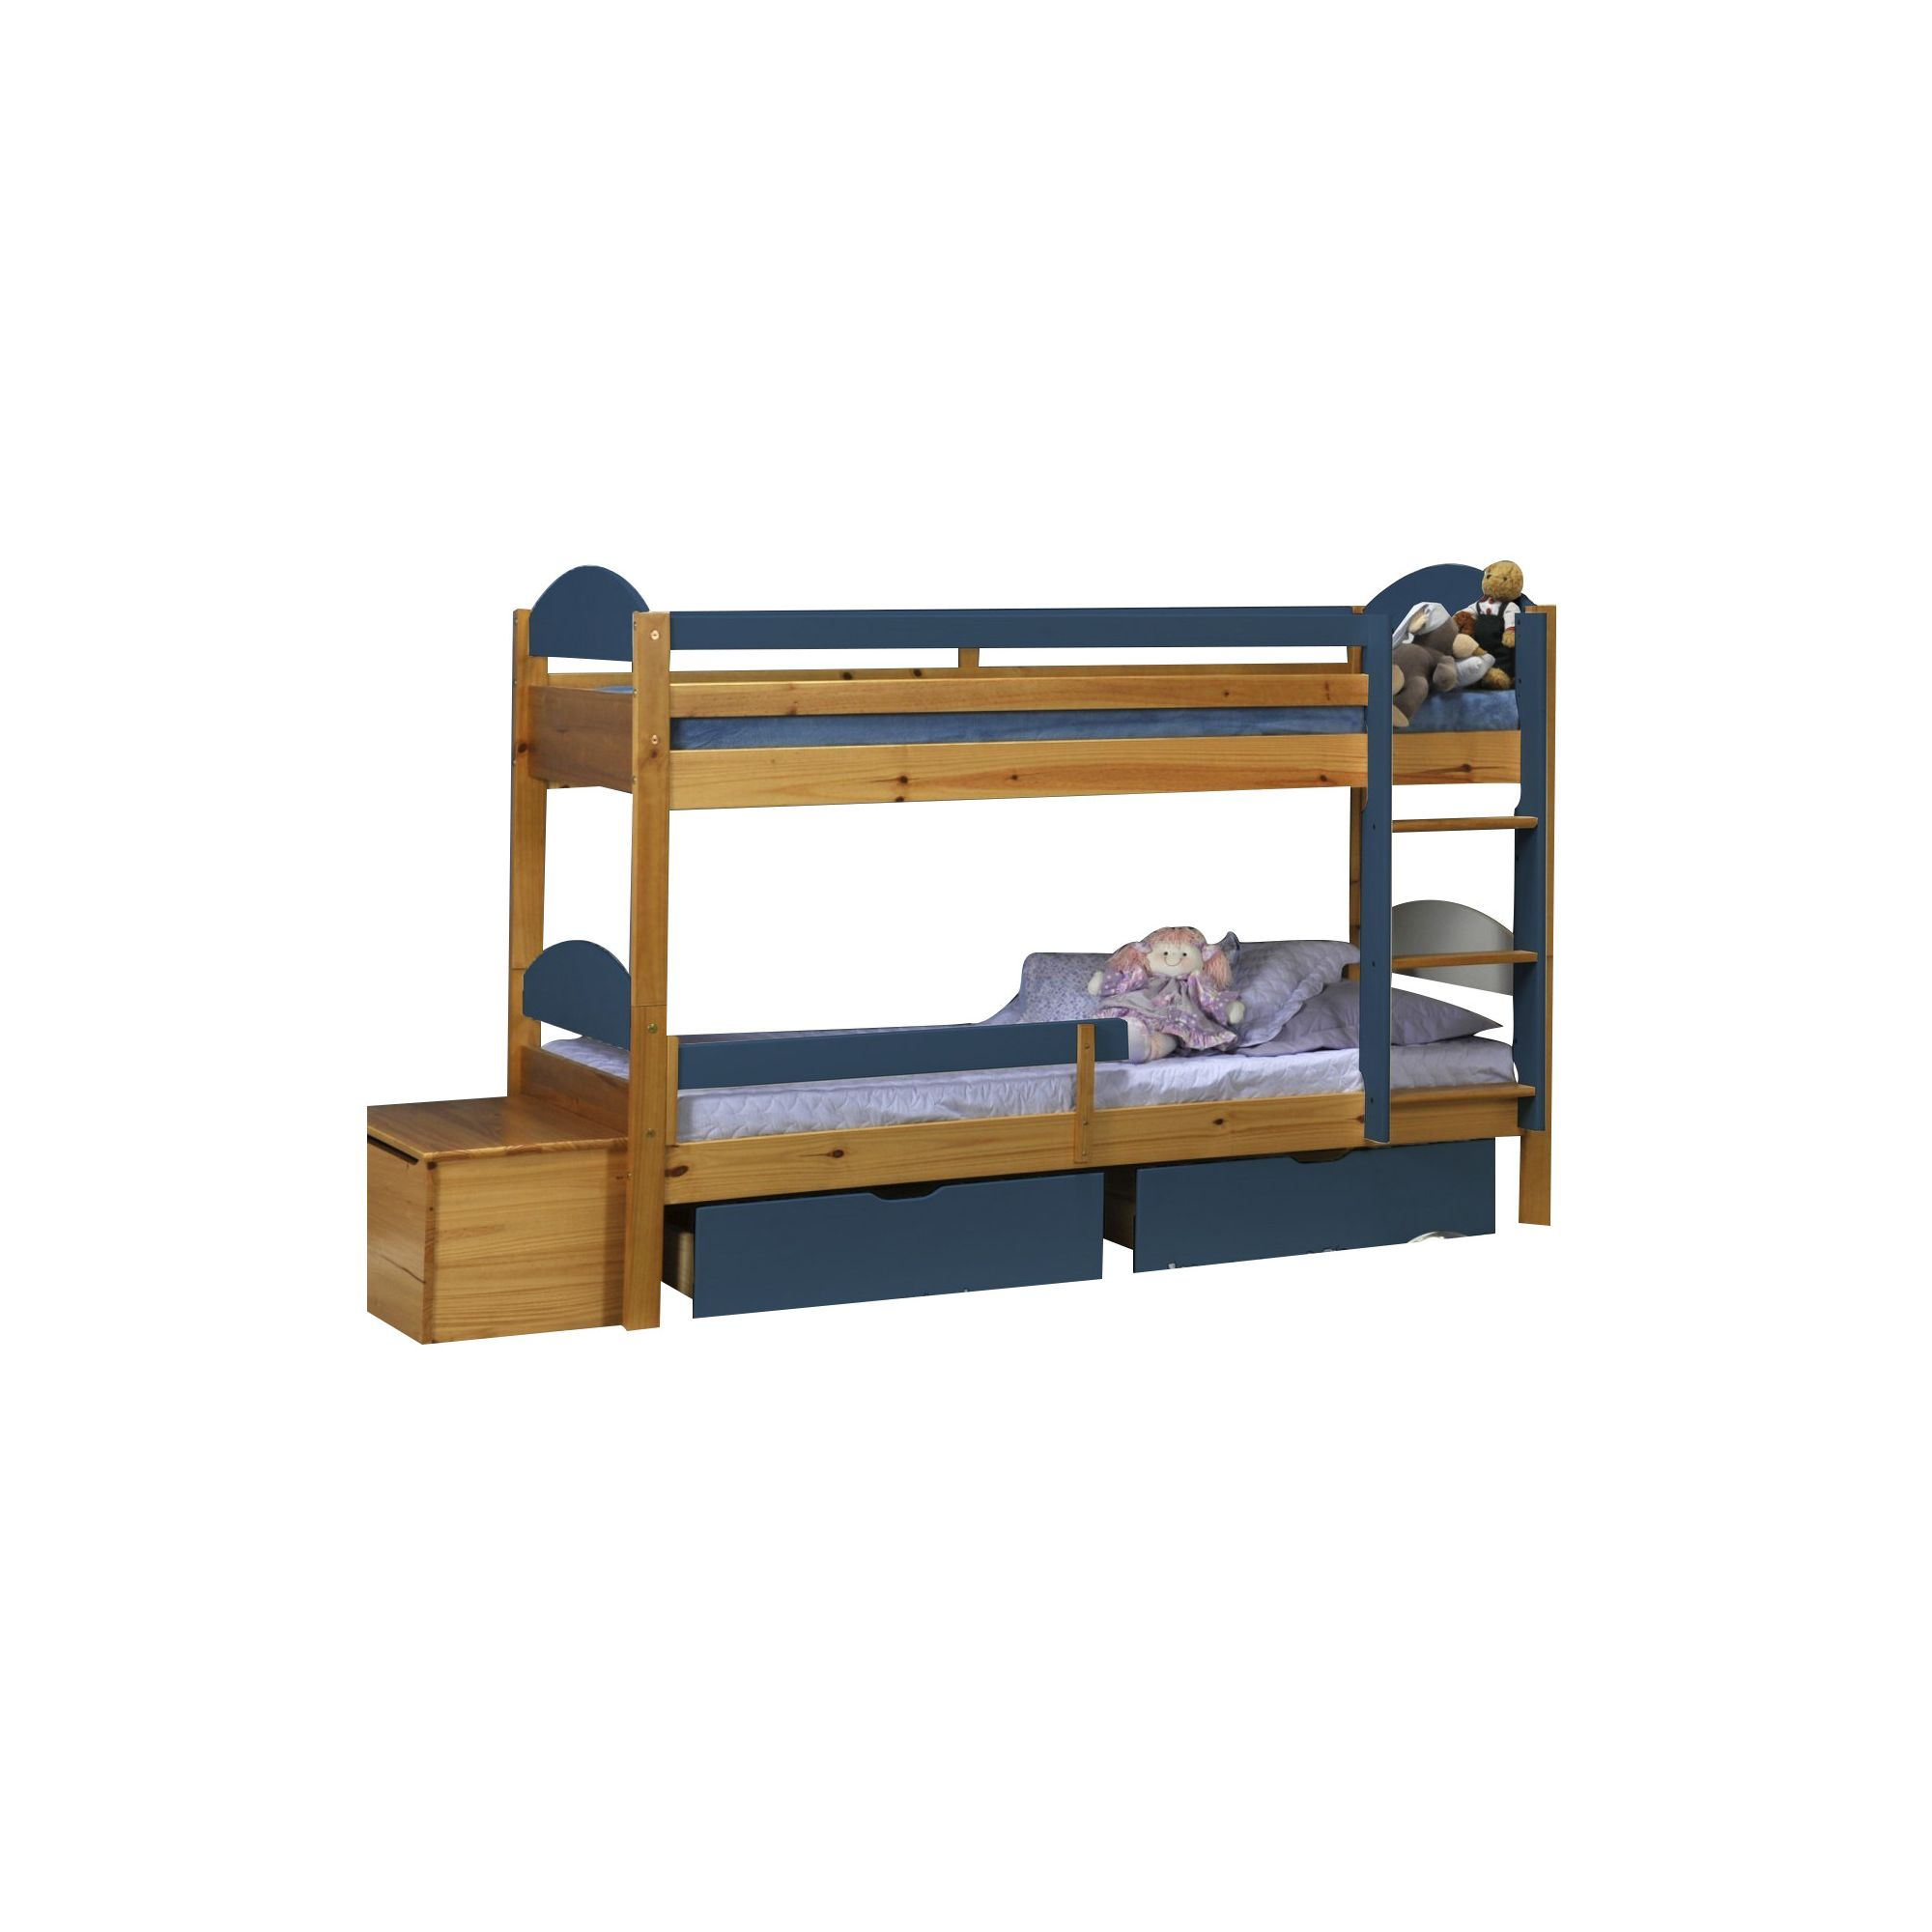 Verona Maximus Bunk Bed - Blue at Tesco Direct